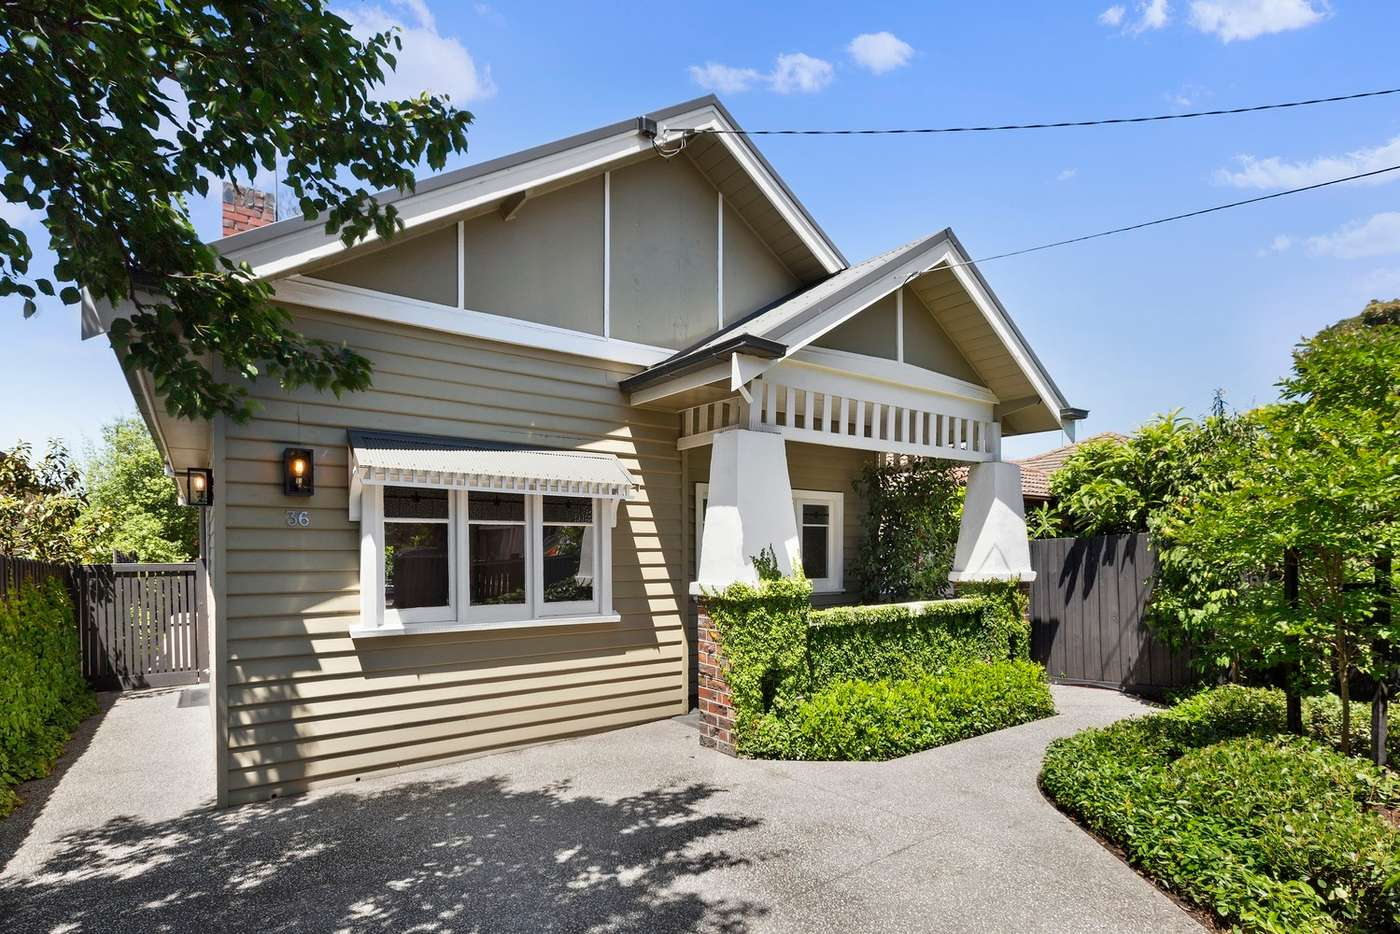 Main view of Homely house listing, 36 Poplar Street, Caulfield South VIC 3162